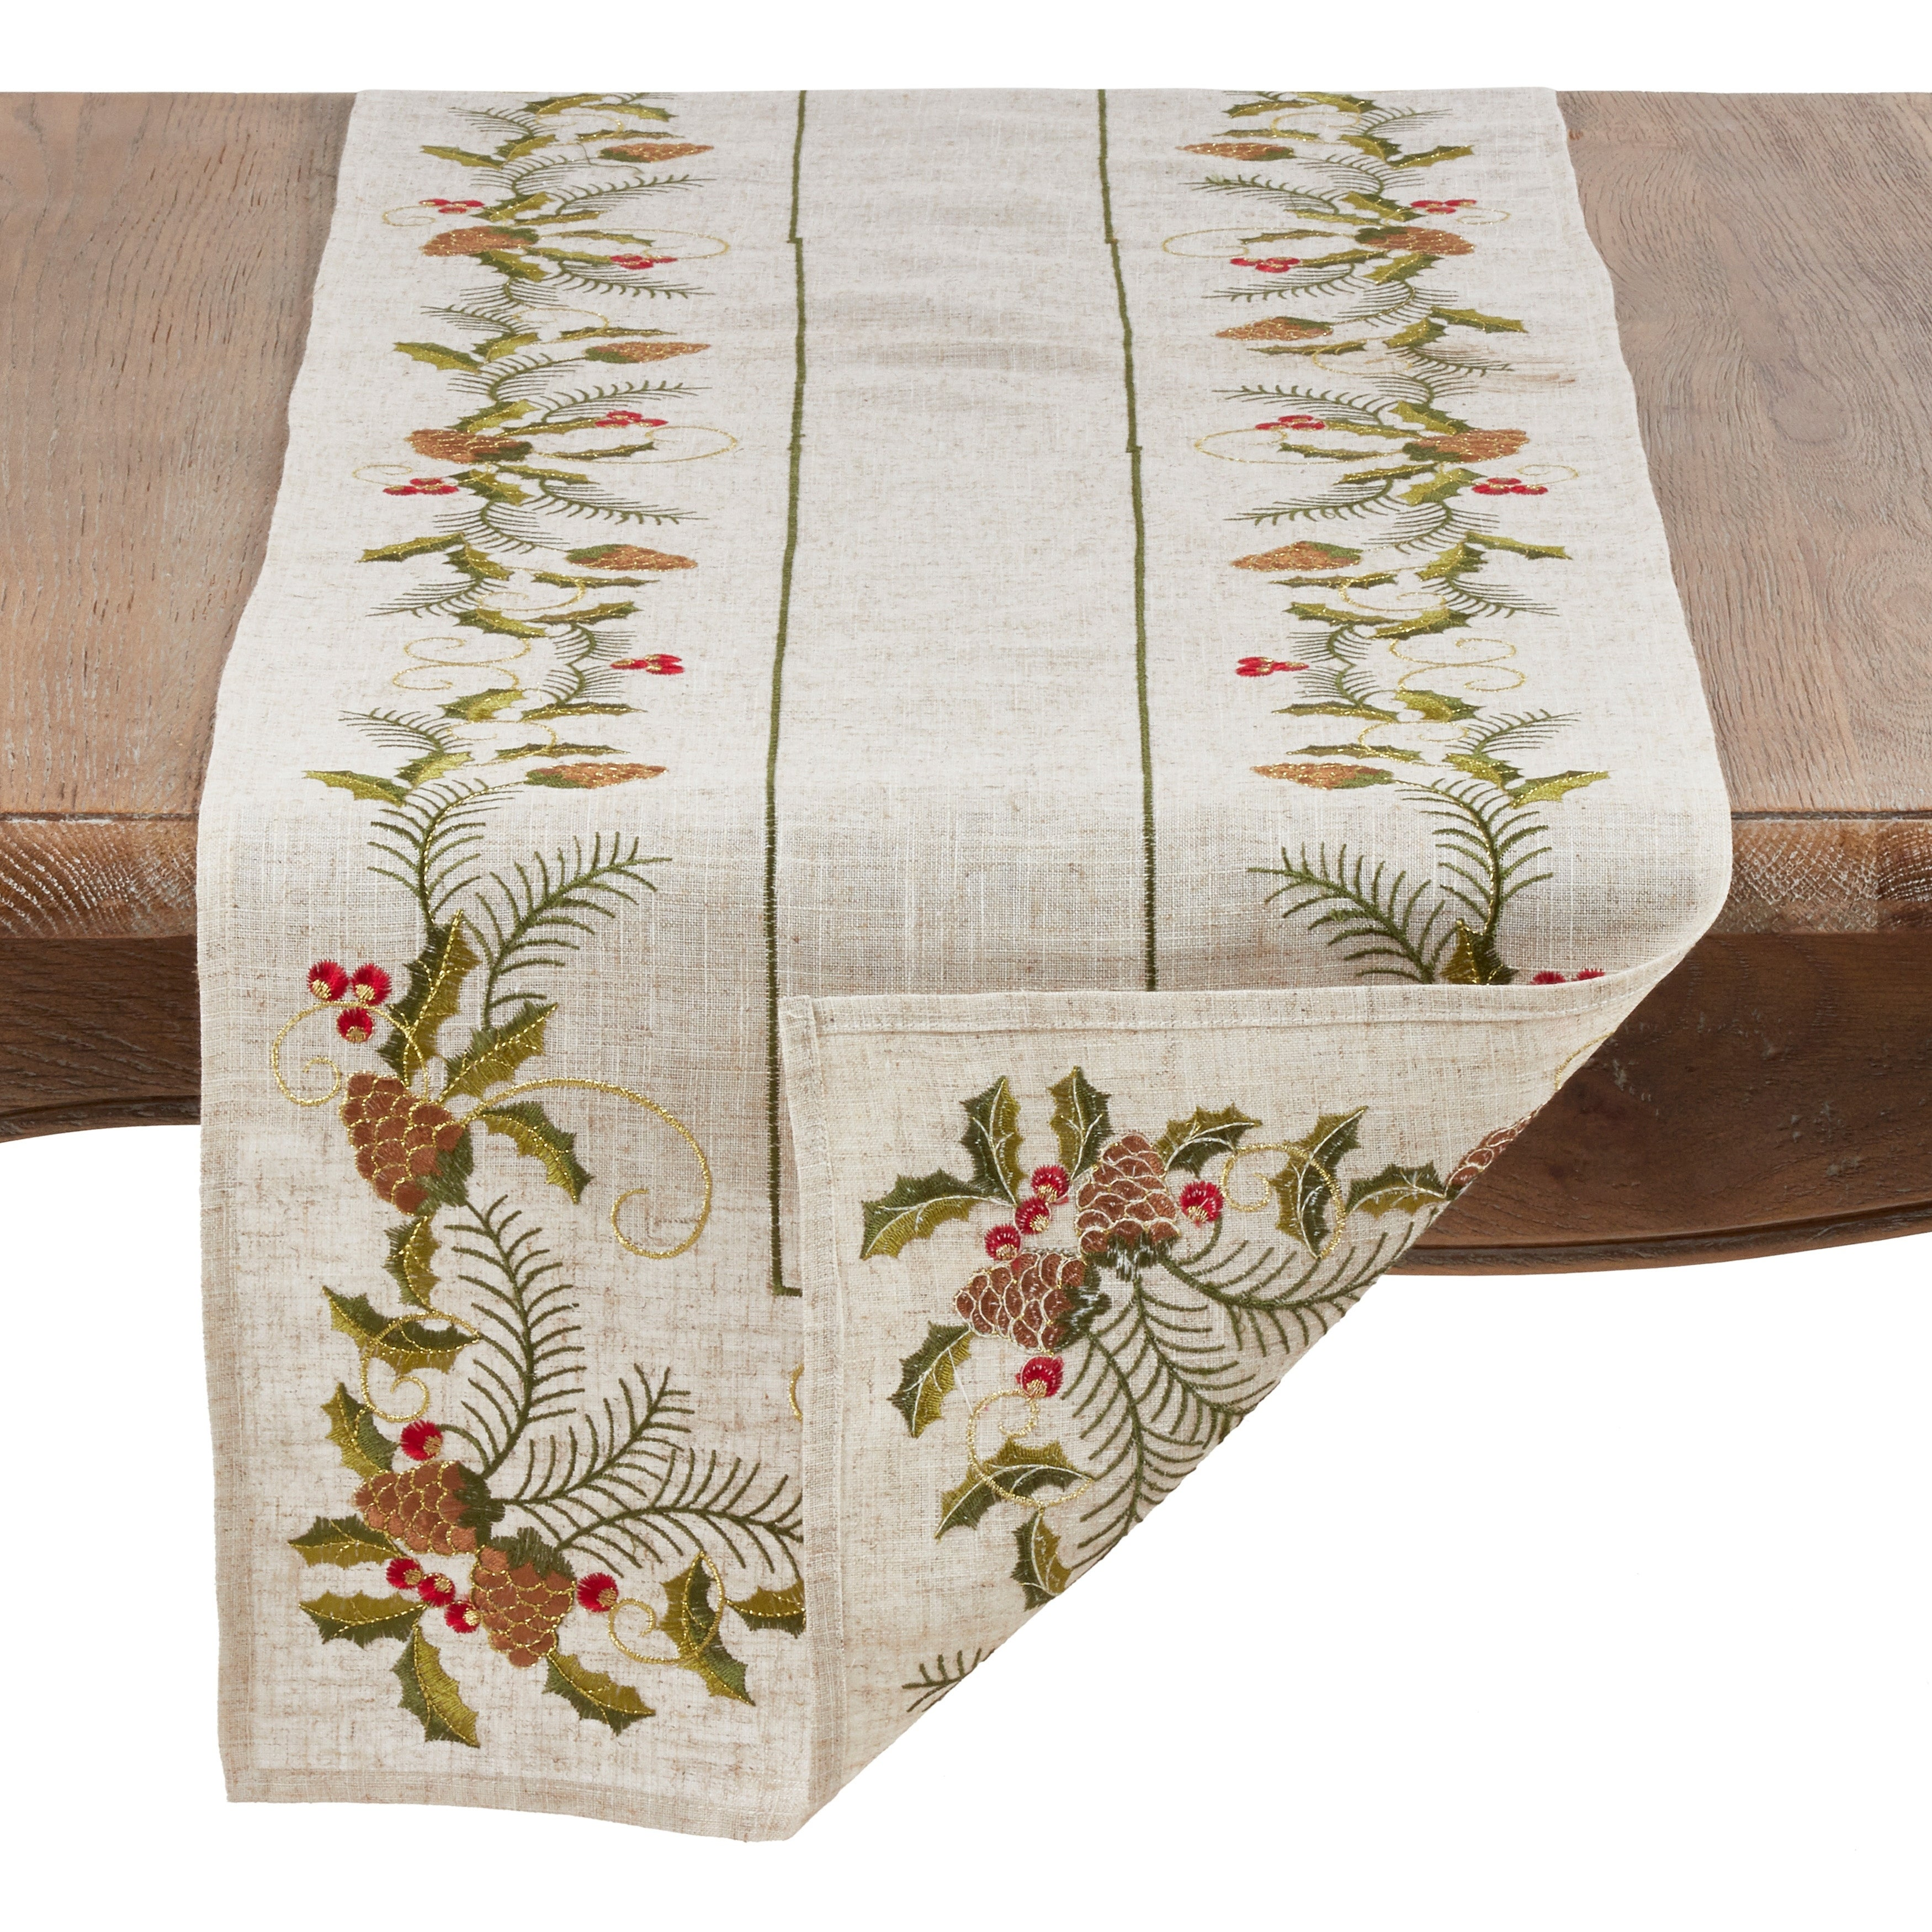 Christmas Table Runner.Christmas Table Runner With Embroidered Pinecone And Holly Design